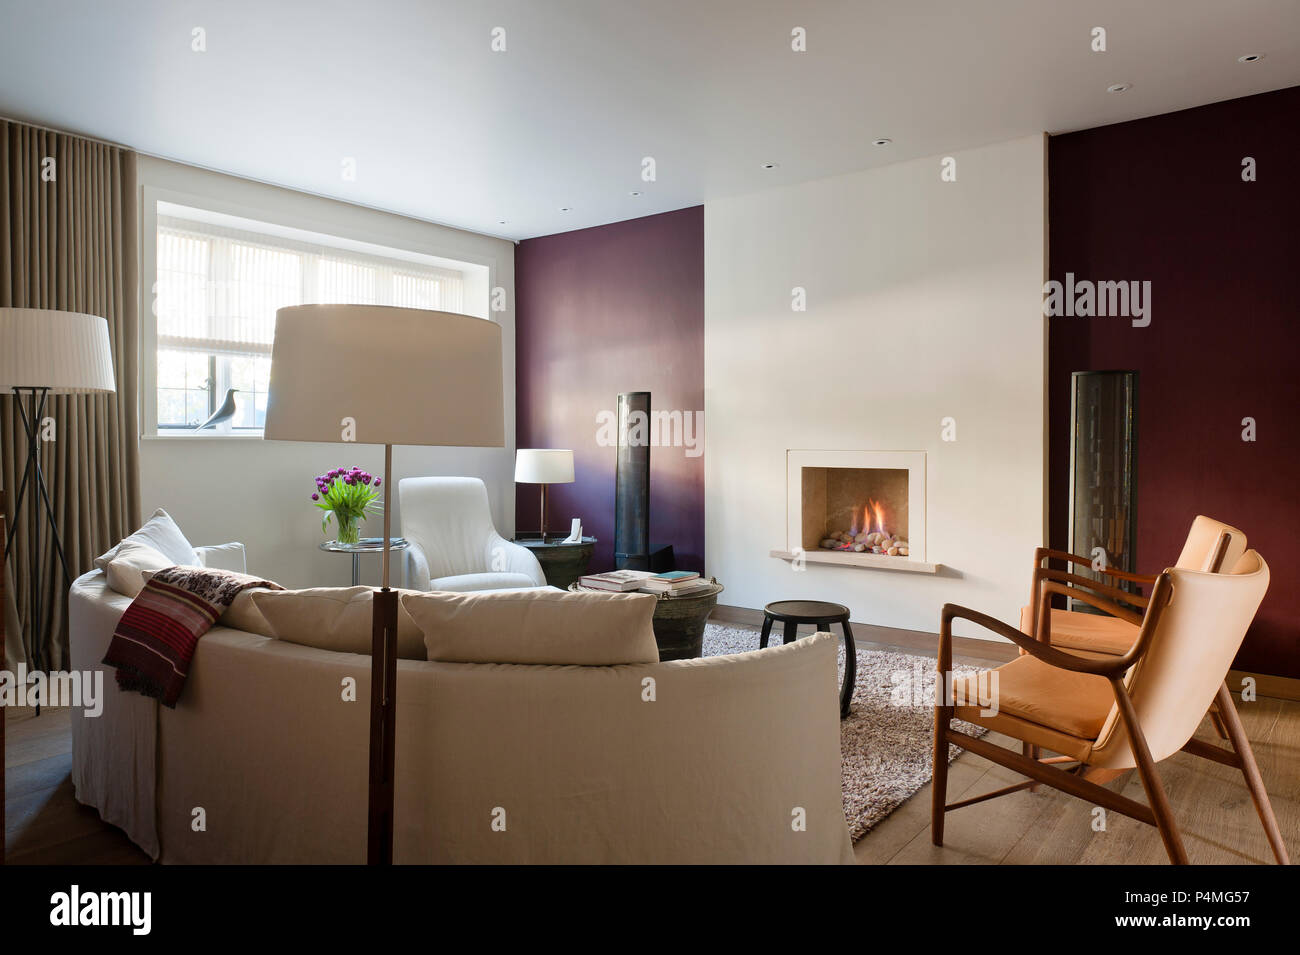 Retro living room with lit fireplace - Stock Image